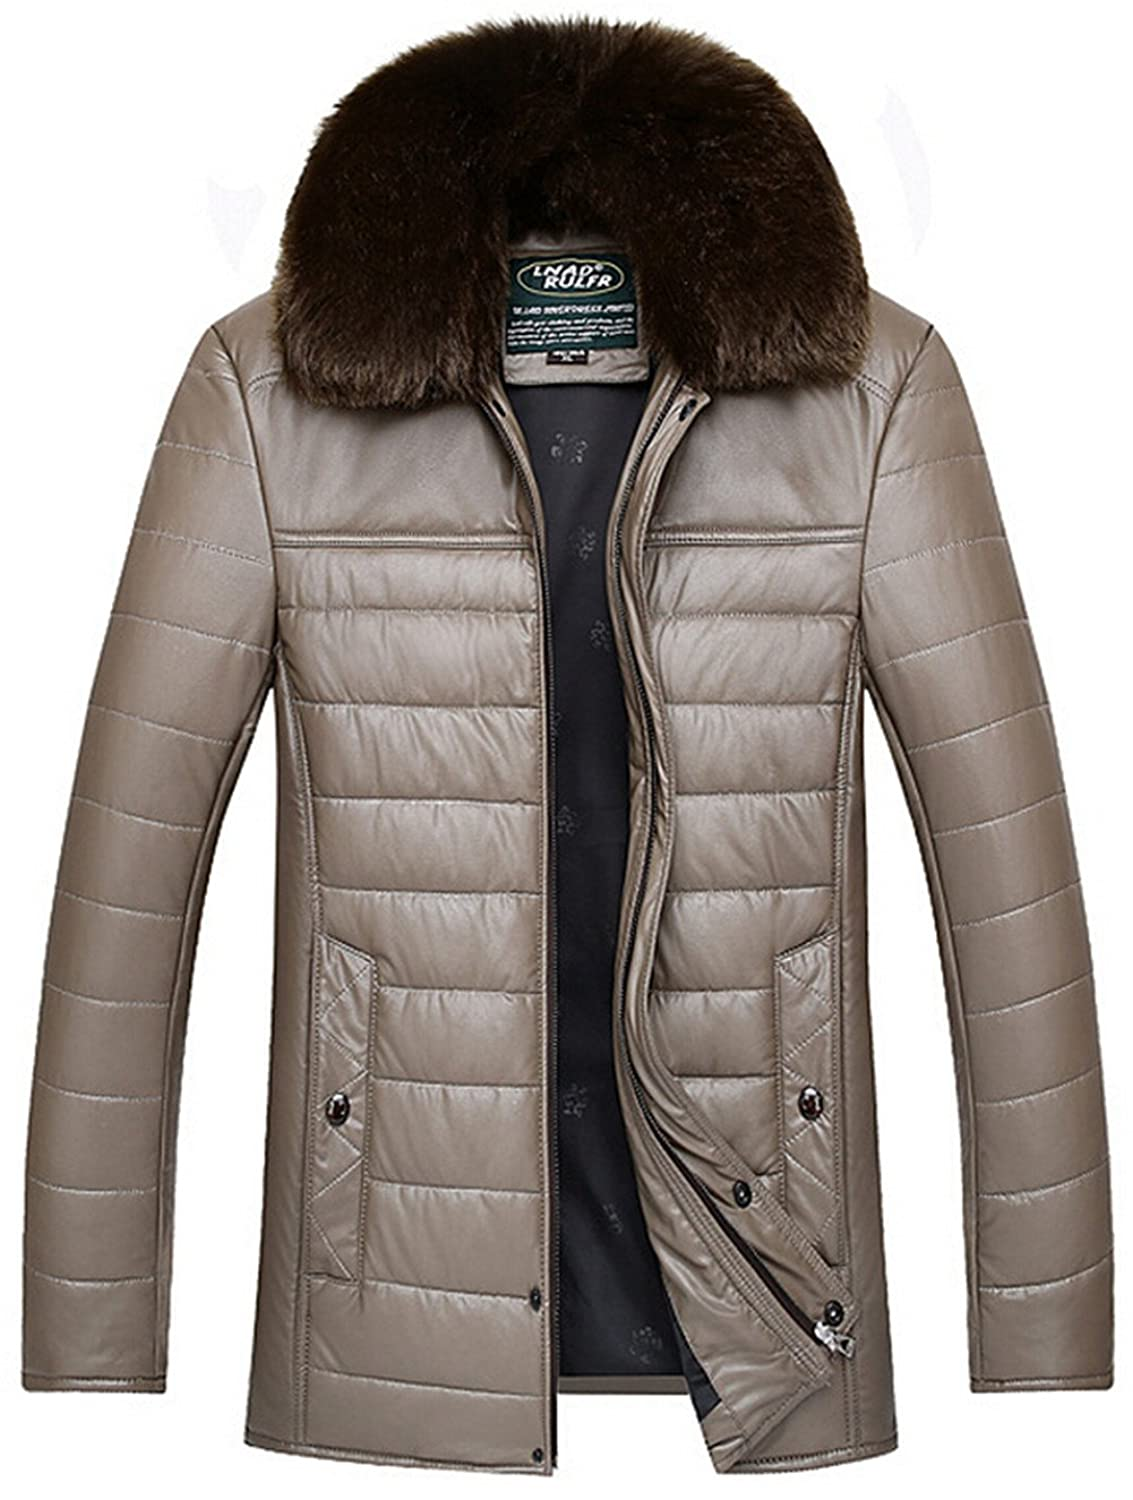 Men's Faux Fur Collar Leather Coat Jacket Thicken Down Padded